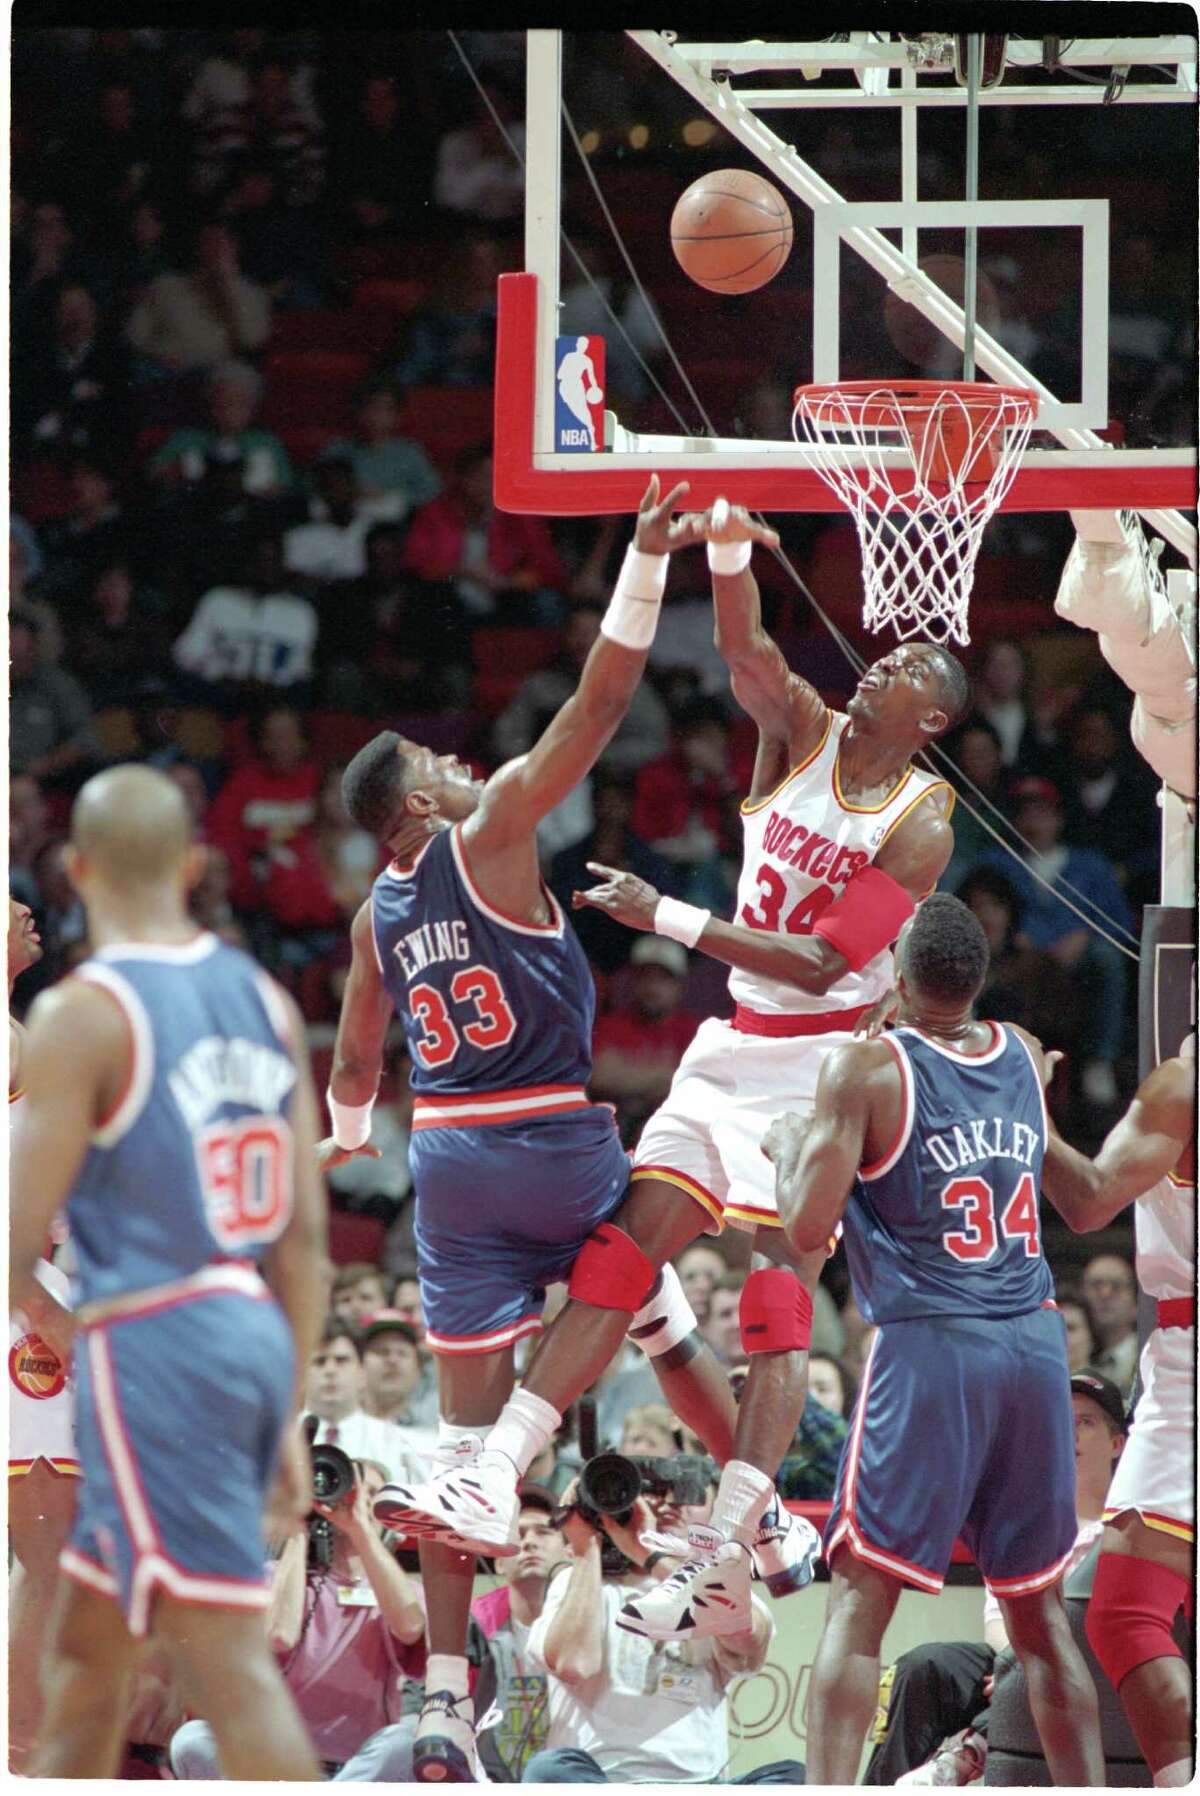 Former Knicks center Patrick Ewing (33) often got an up-close view of Hakeem Olajuwon's greatness during their Hall of Fame careers.